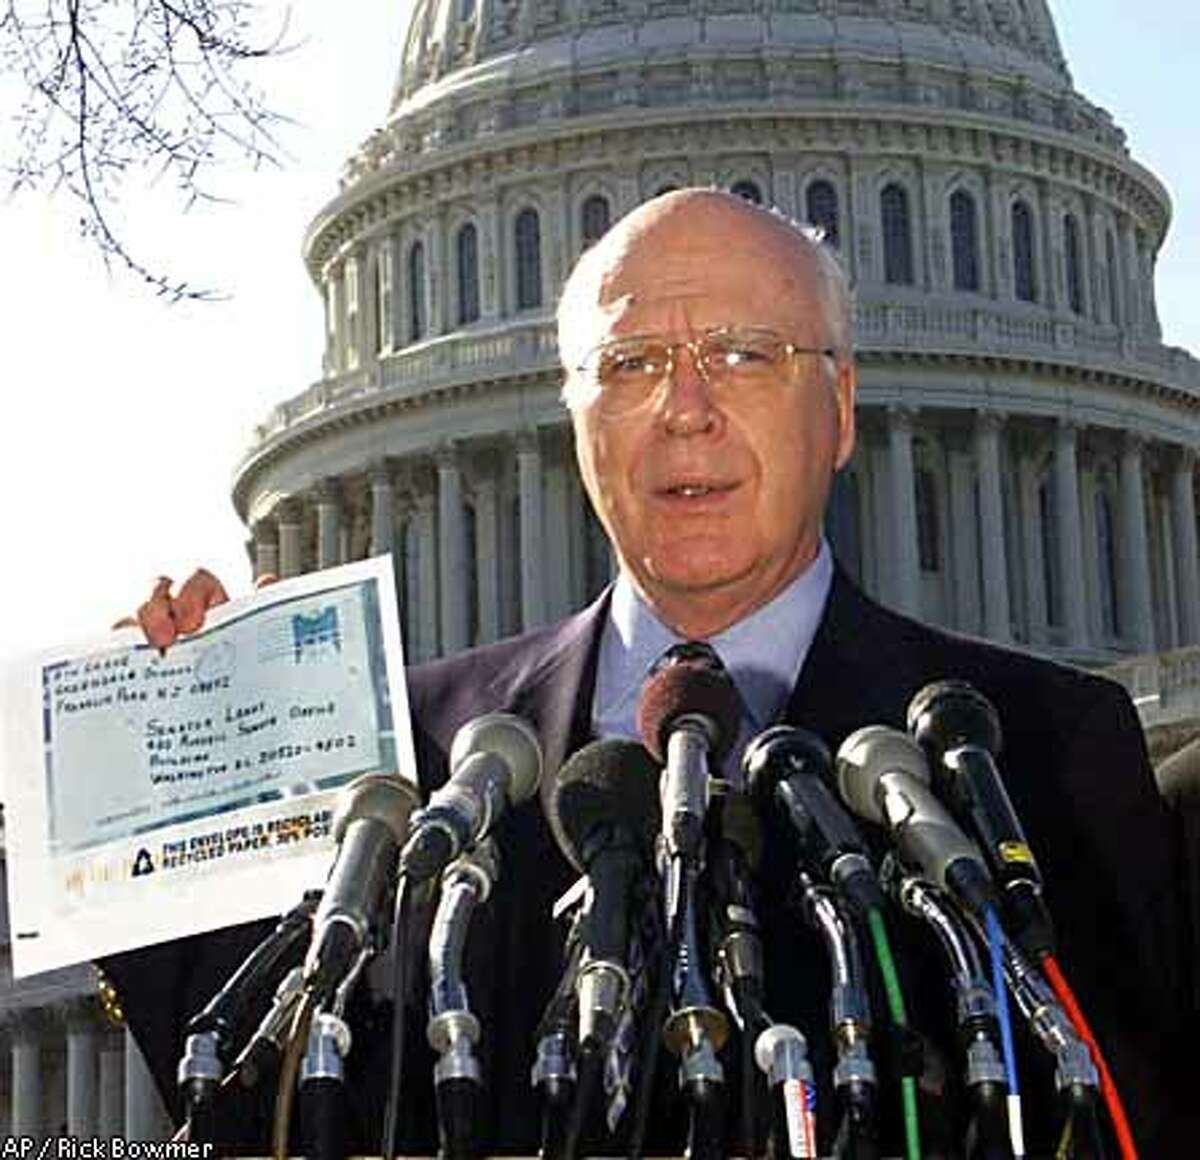 Sen. Patrick Leahy, D-Vt., holds up a copy of a letter that was sent to his office.